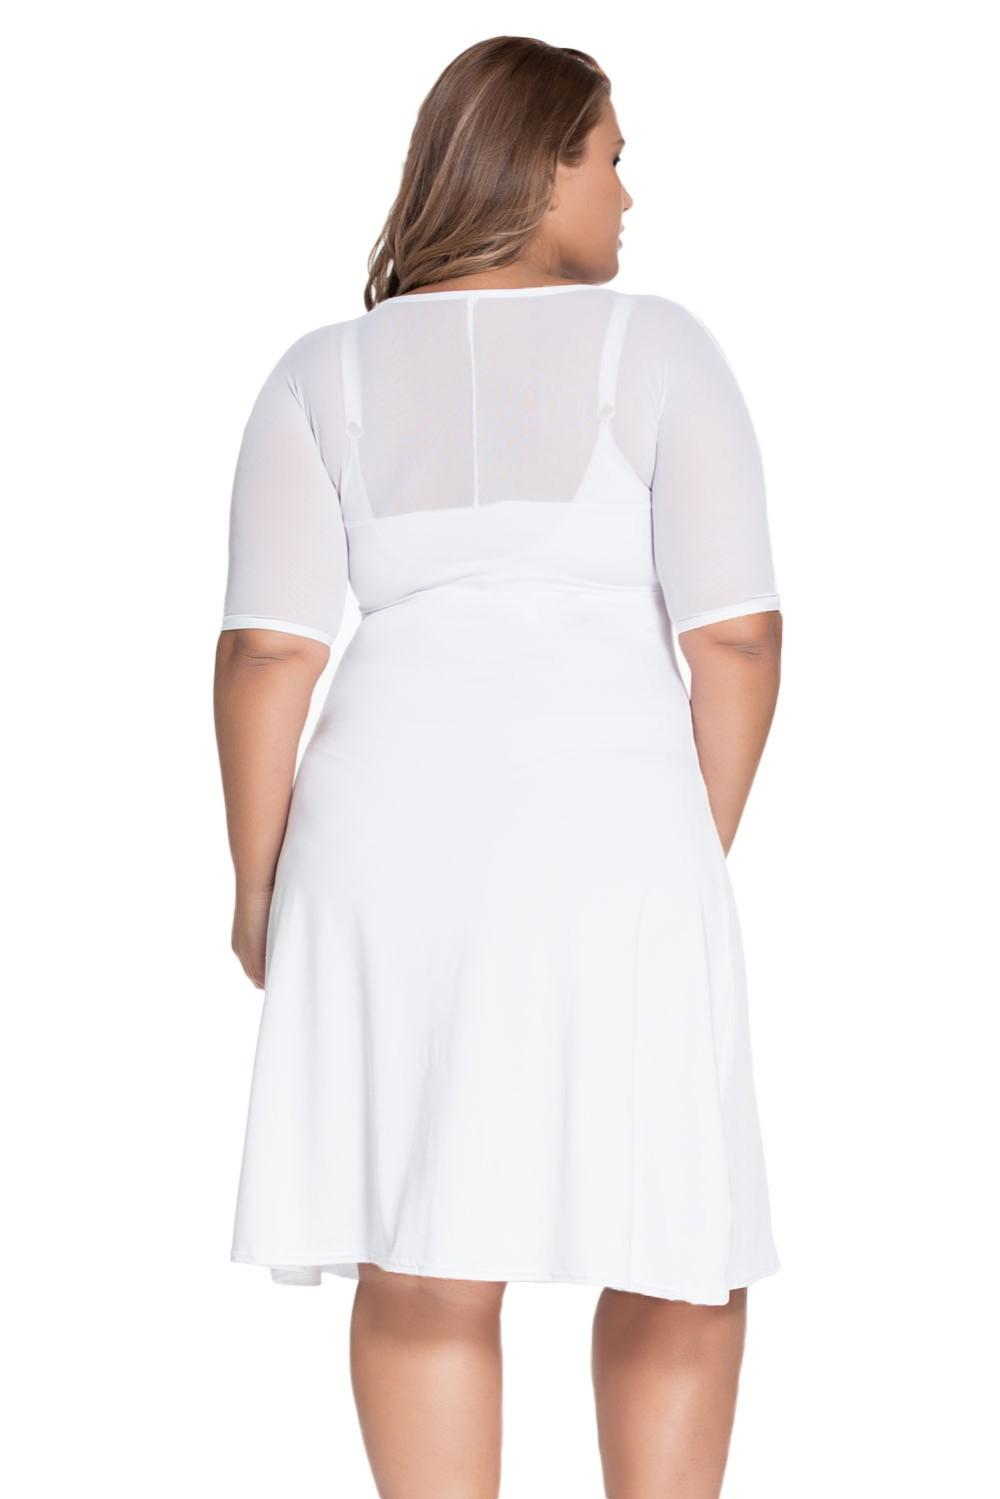 White-Plus-Size-Sugar-and-Spice-Dress-LC60671-2-4